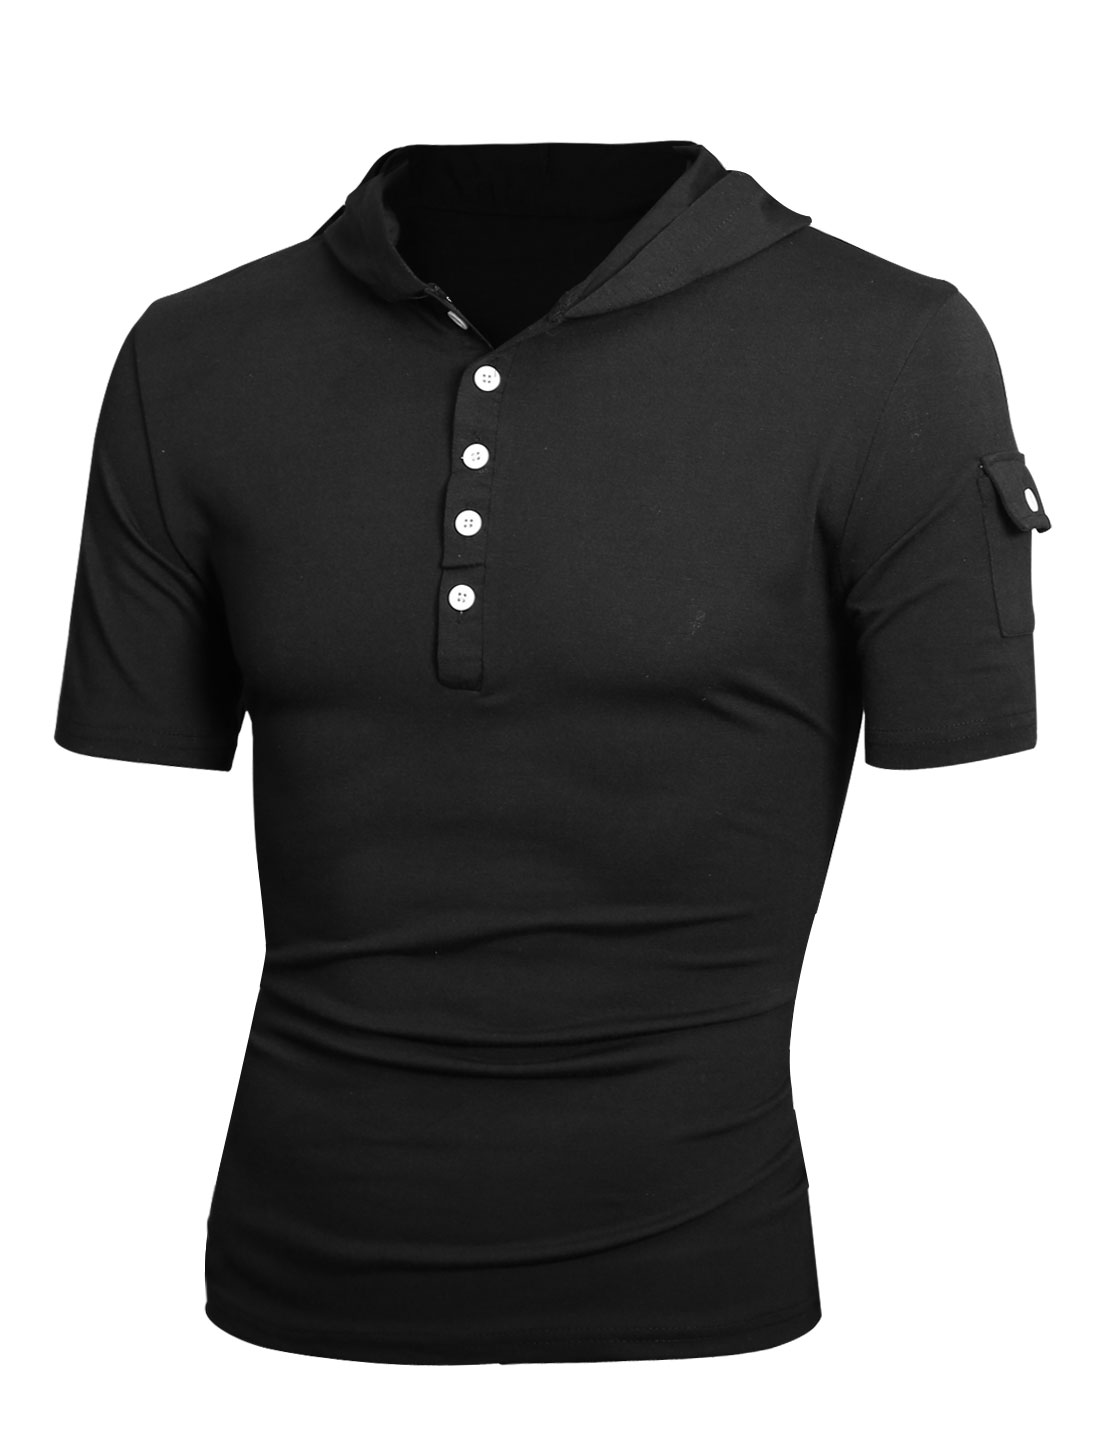 Men Hood Half Buttoned Front One Button Closure Sleeve Pocket T-shirt Black M